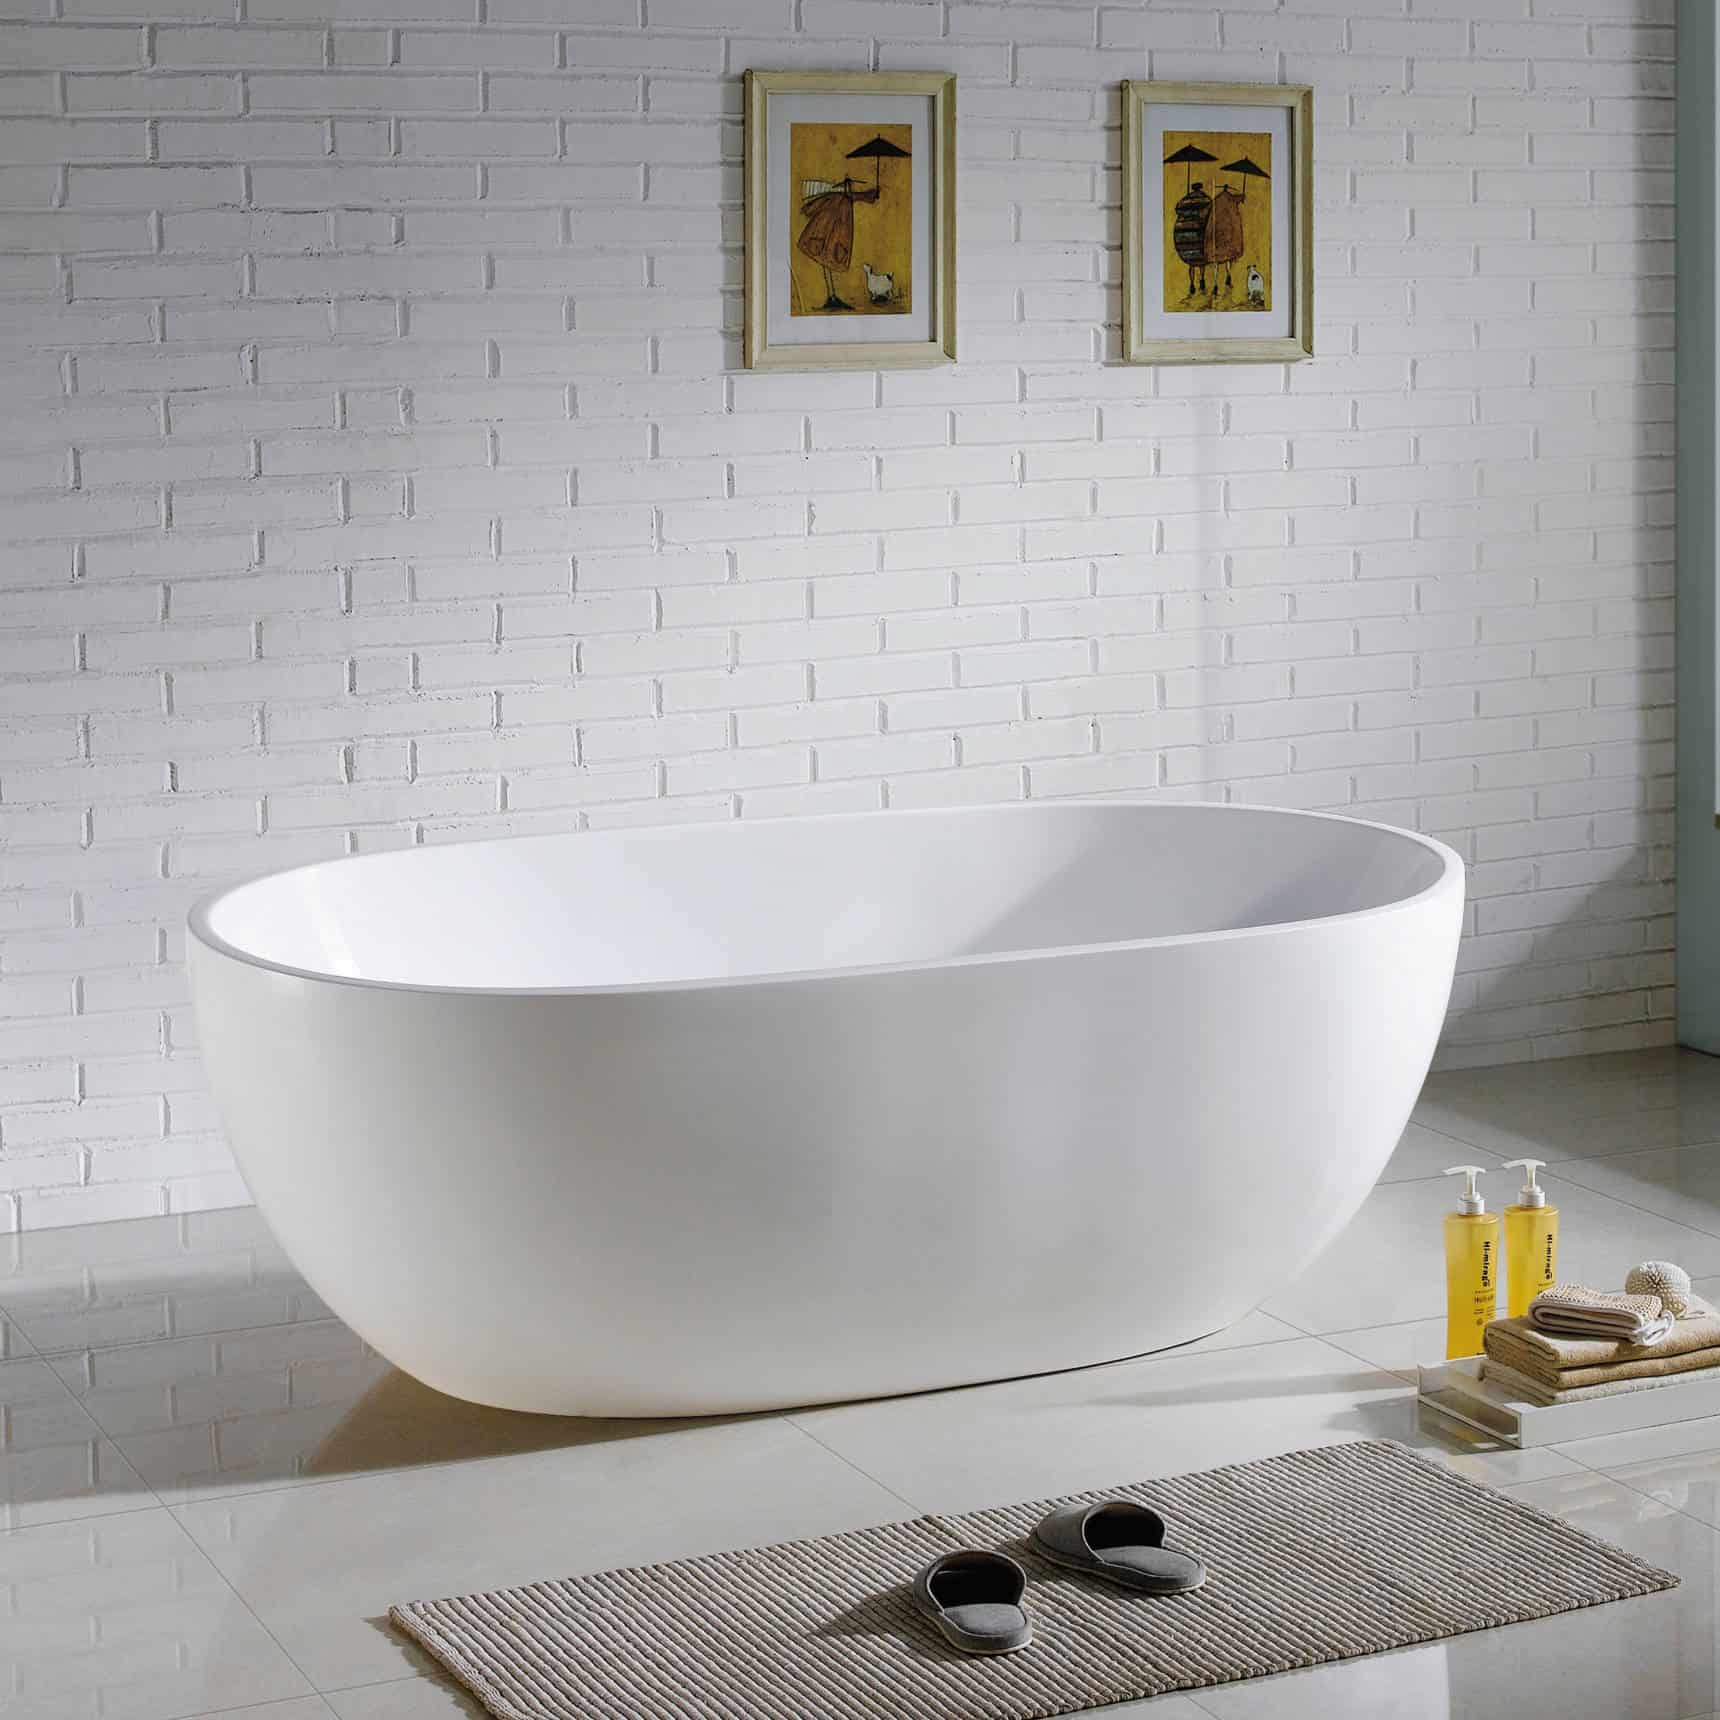 Update your bathroom to fit your budget